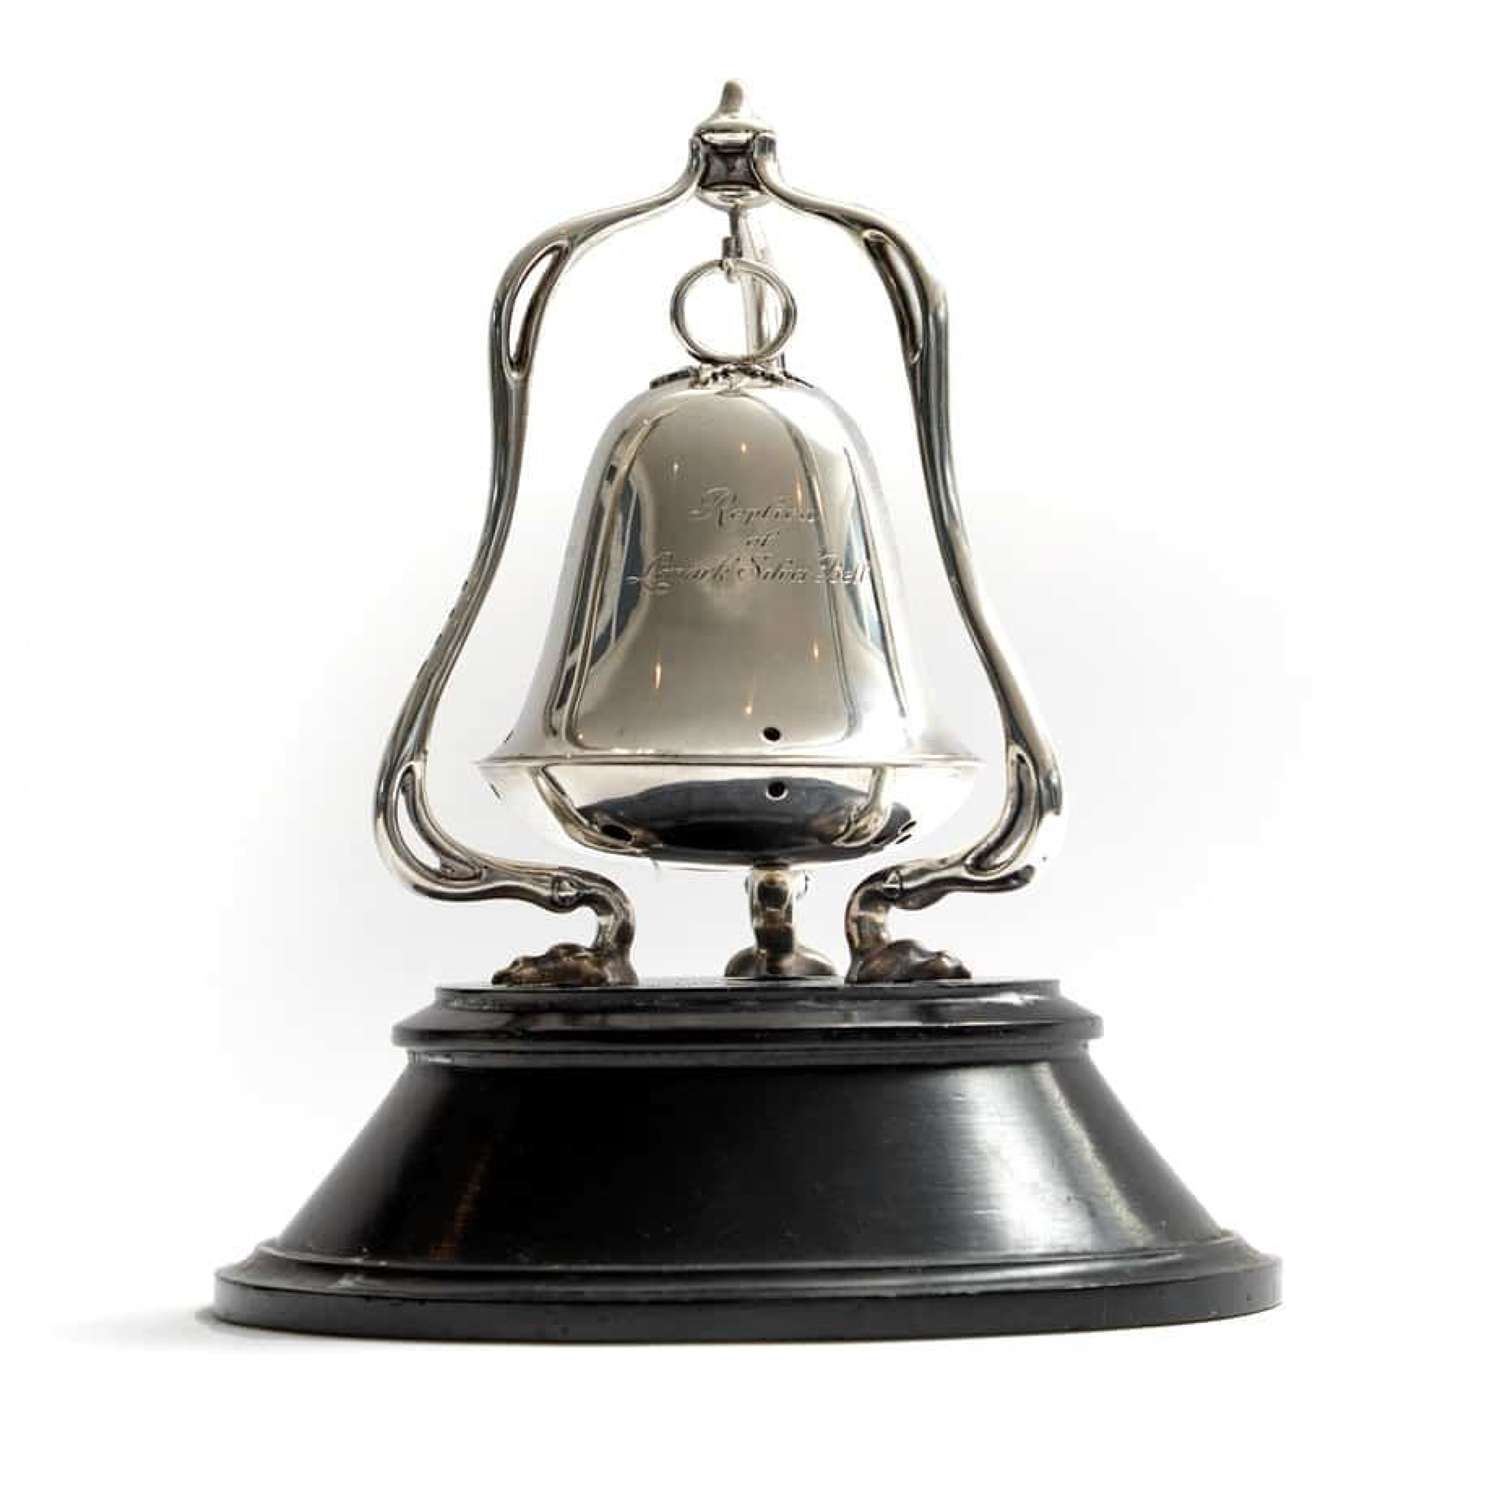 The Lanark Bell silver racing trophy - by Hamilton and Inches